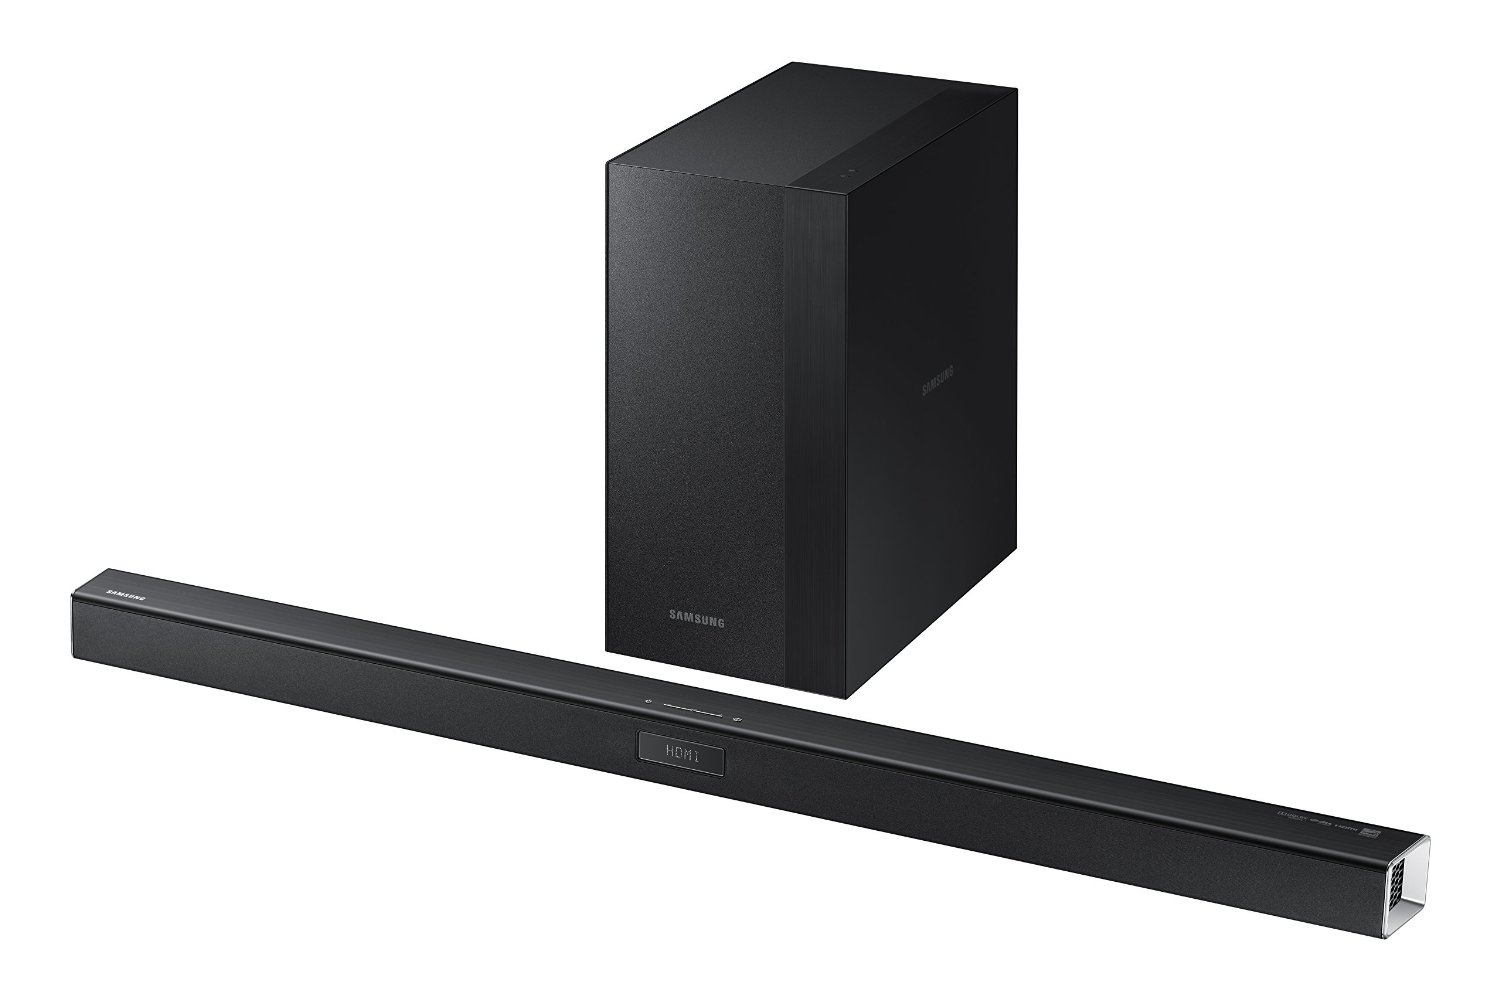 Samsung HW-J450 2.1 Channel 300 Watt Wireless Audio Soundbar